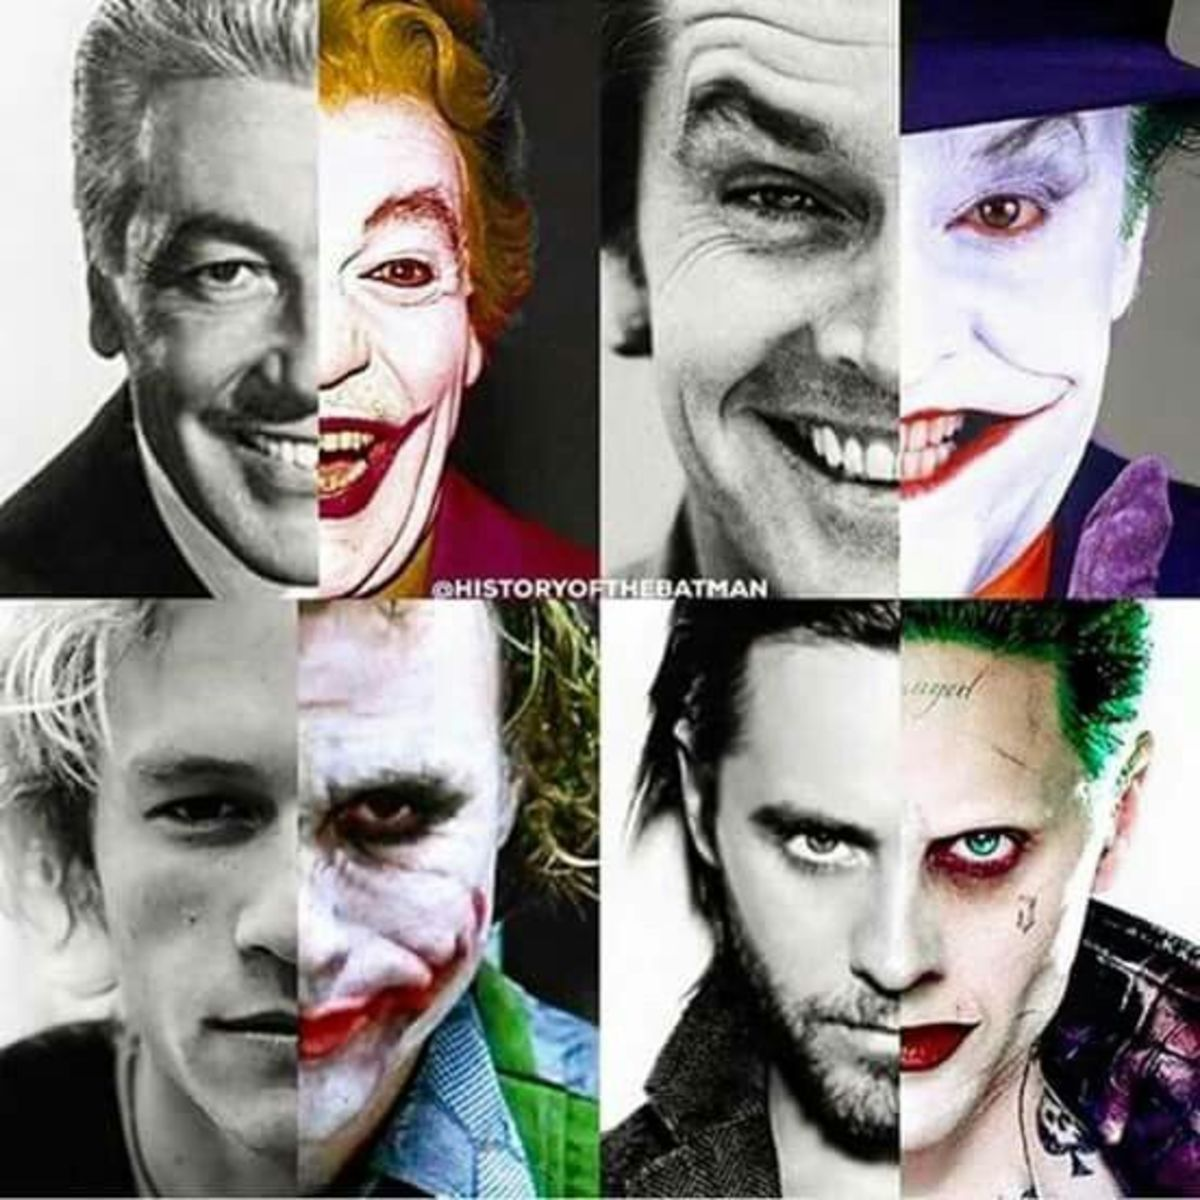 Had to include this awesome picture of the Jokers throughout film history.